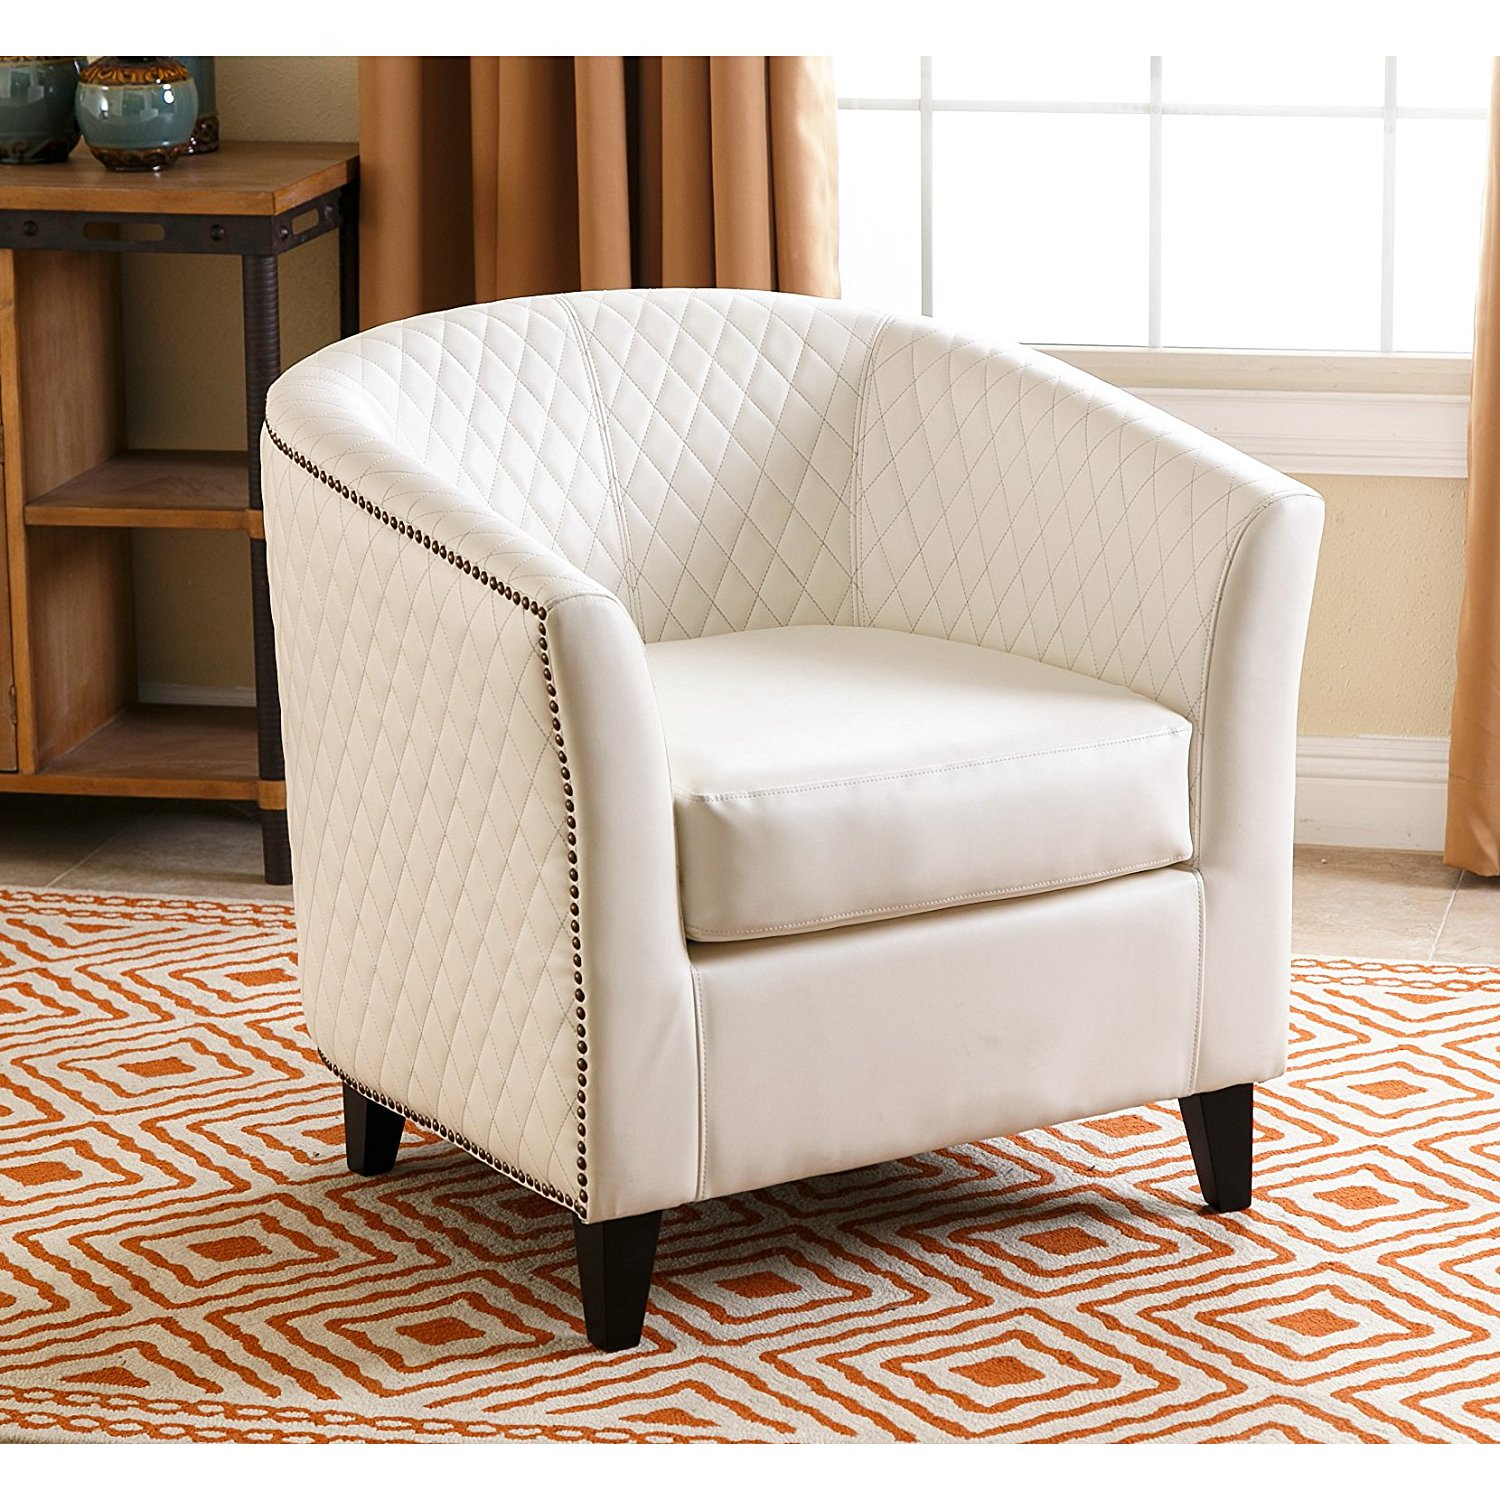 ABBYSON LIVING Charles White Tufted Quilted Leather Armchair